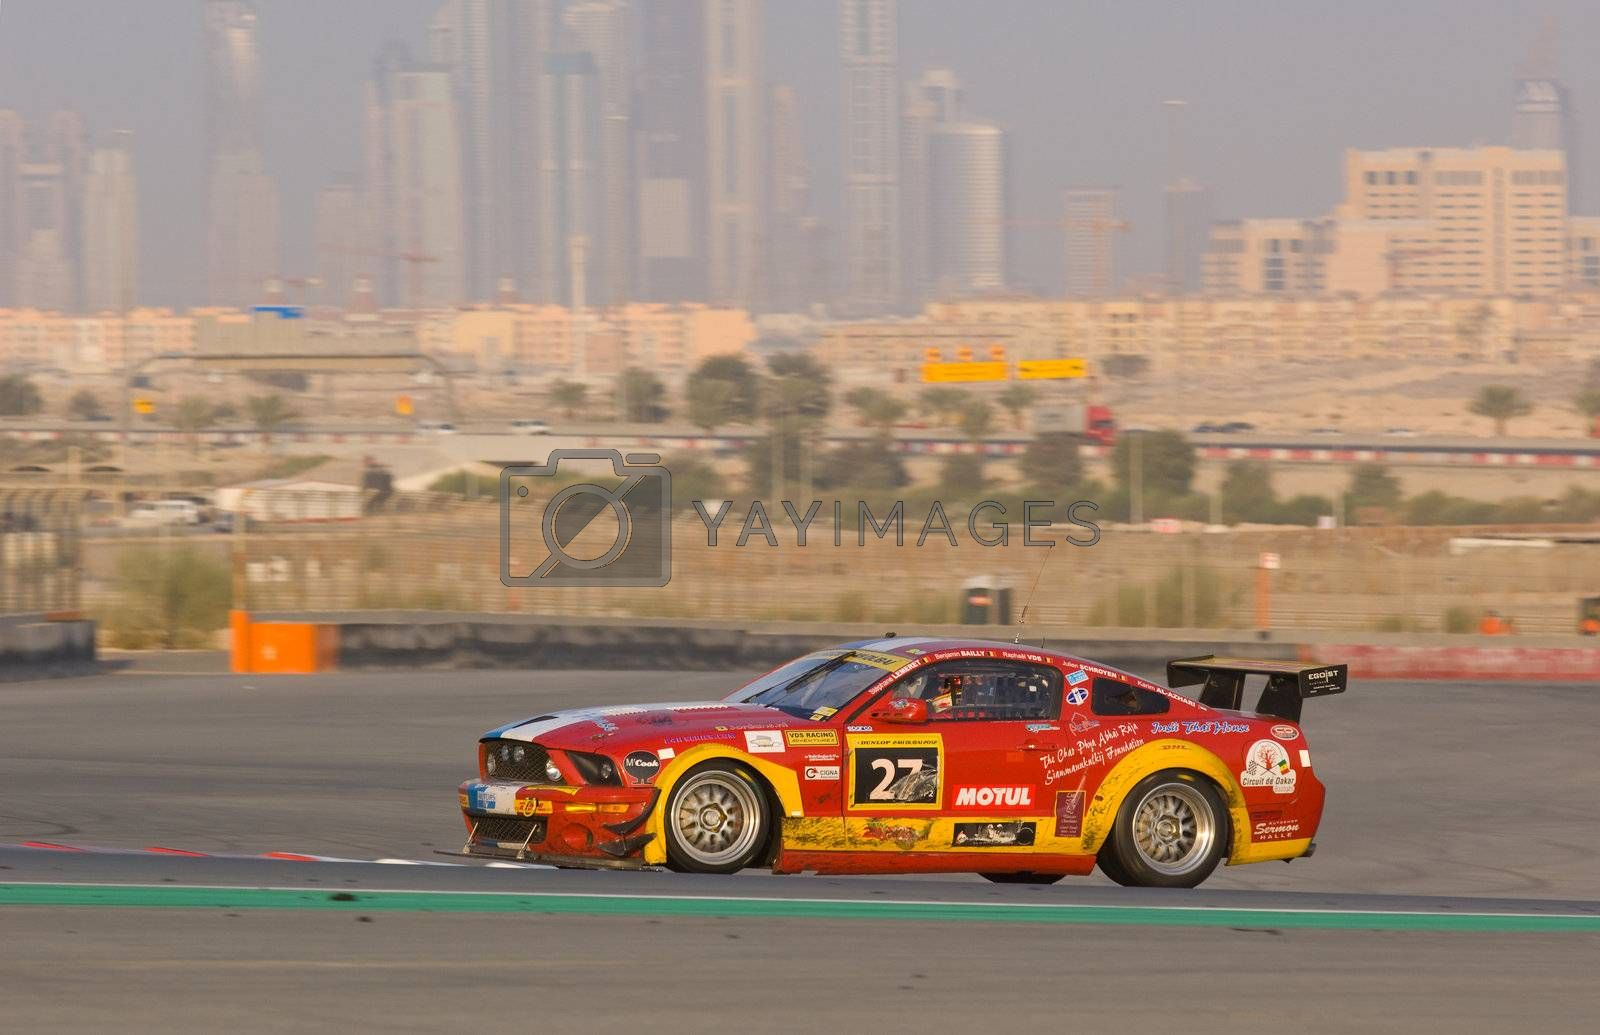 DUBAI - JANUARY 14: Car 27, a red Ford Mustang with Dubai City in the background, during the 2012 Dunlop 24 Hour Race at Dubai Autodrome on January 14, 2012.